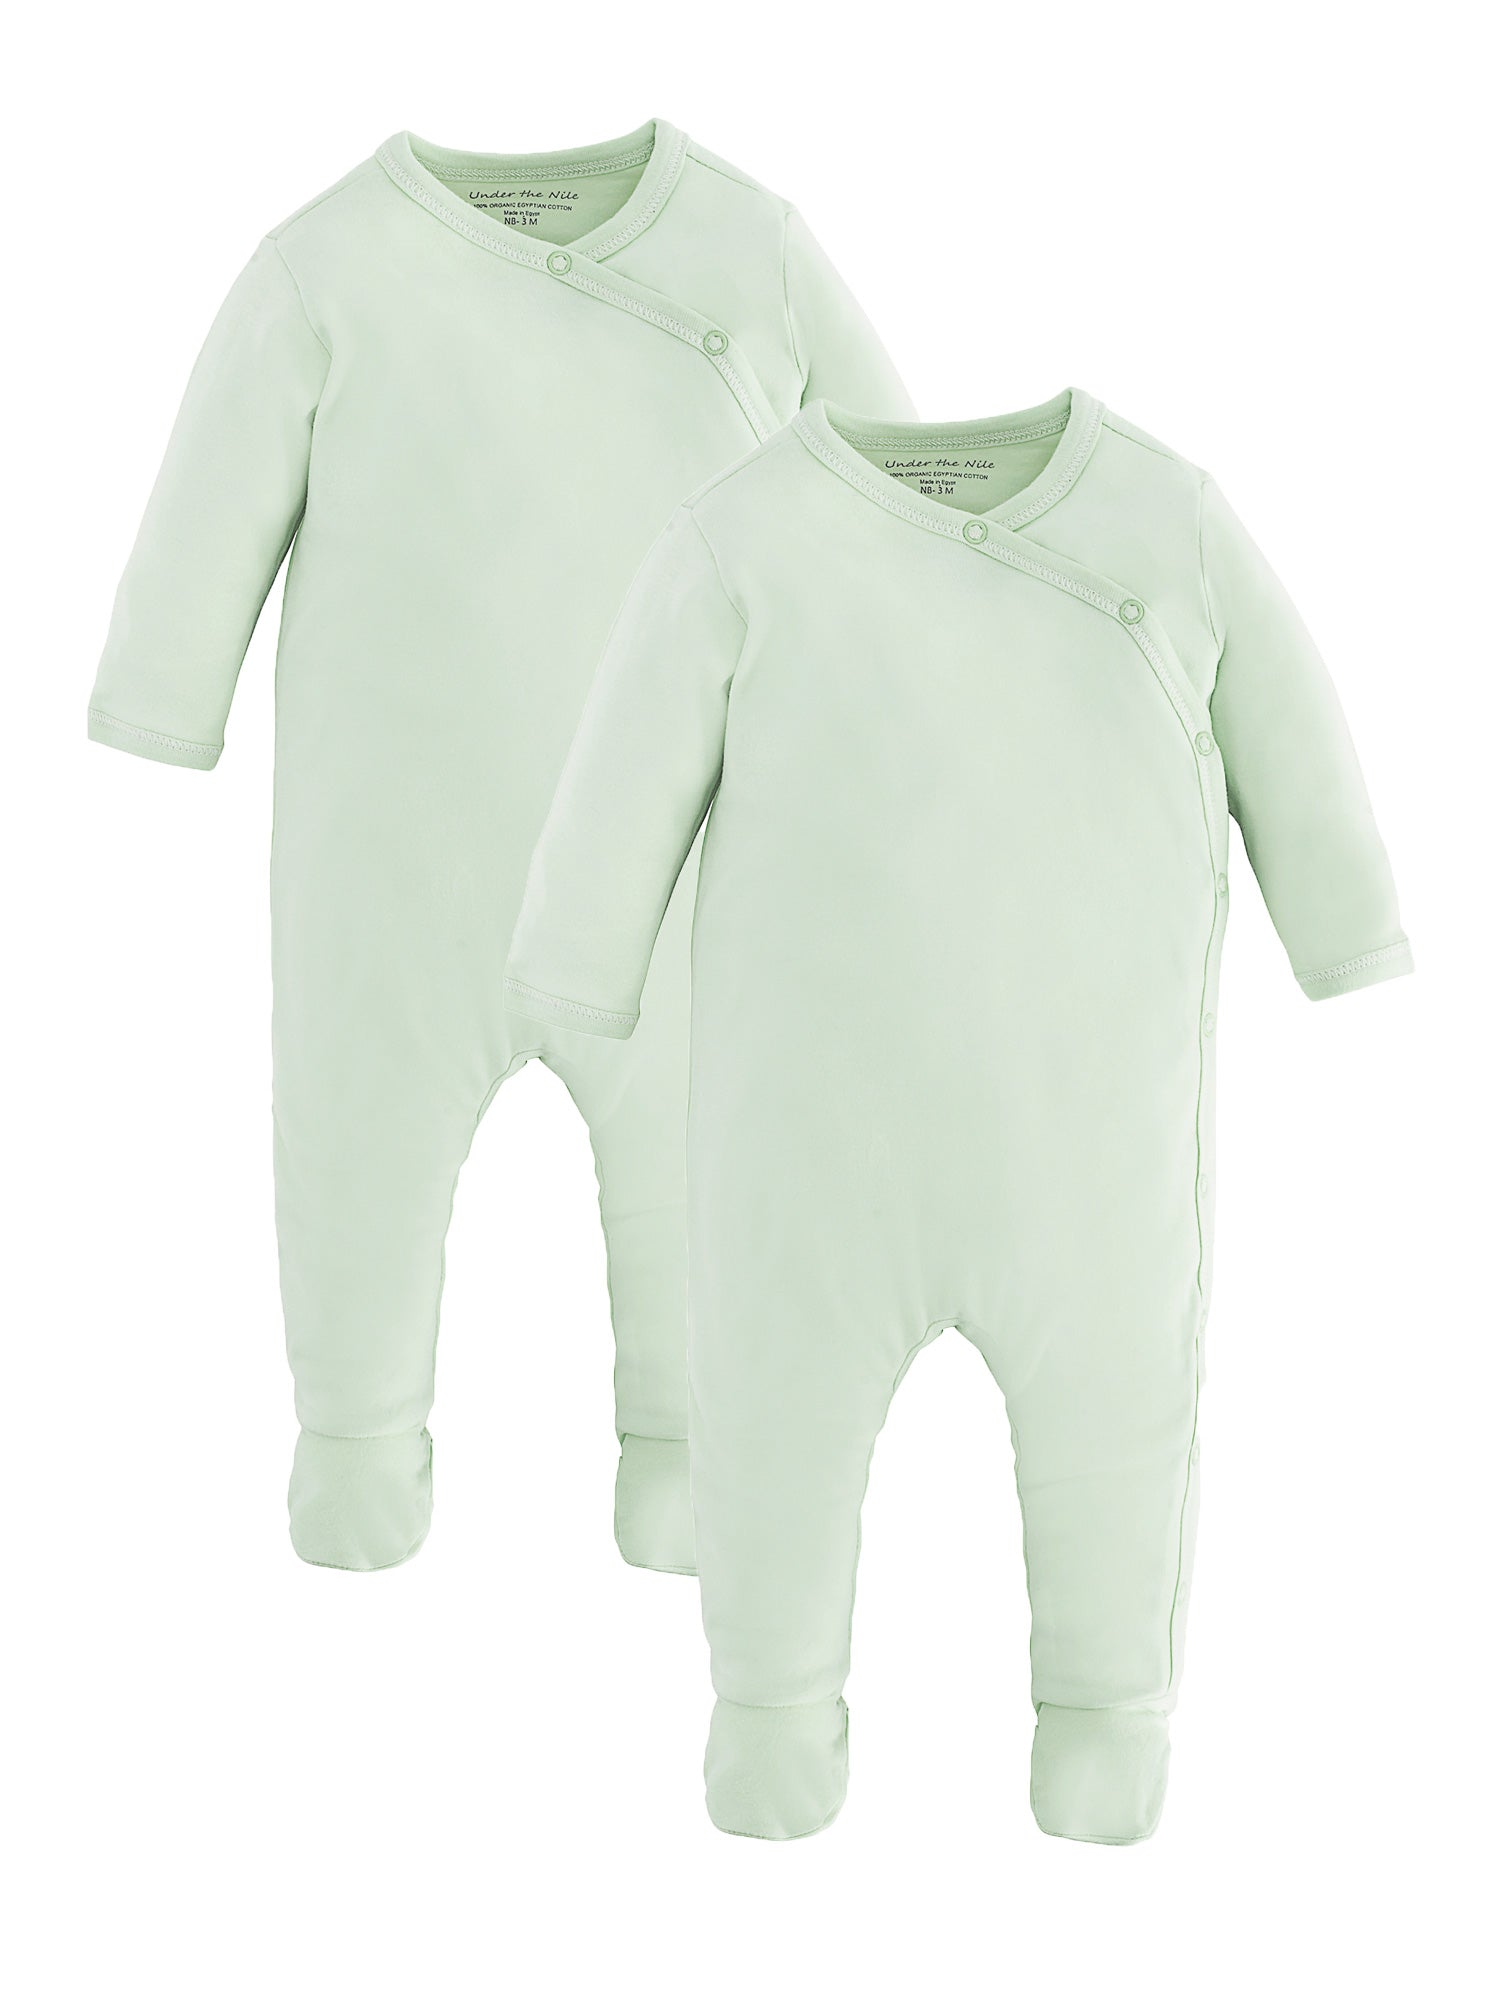 Side Snap Footie - Sage Green Value Pack